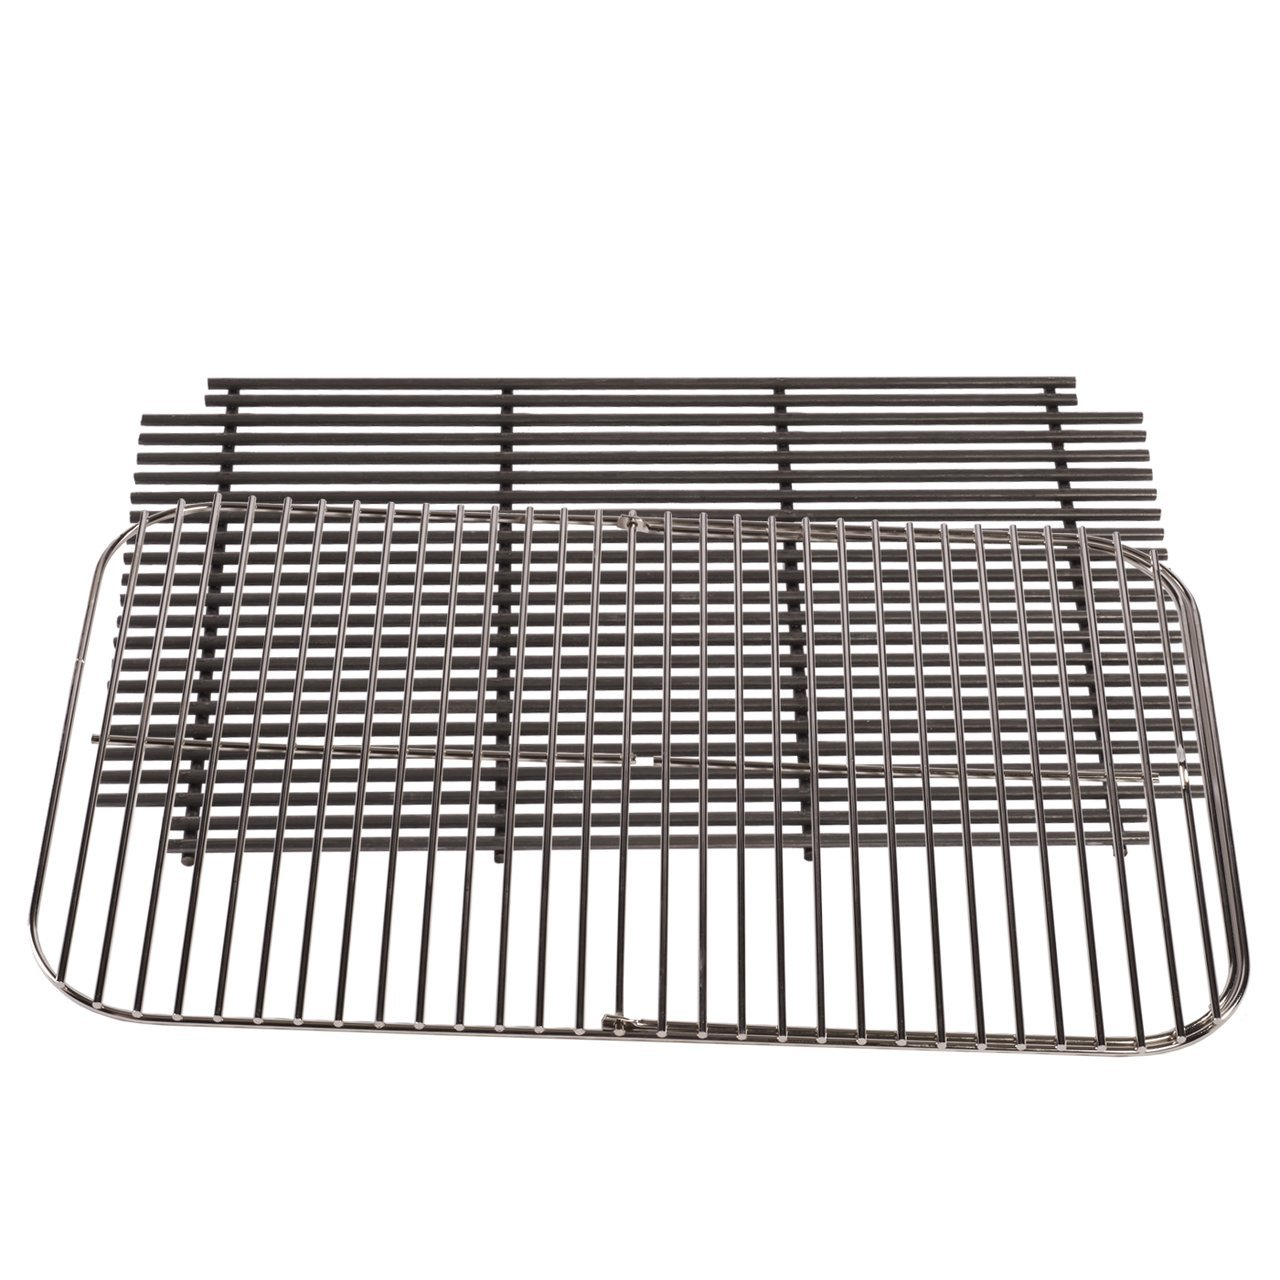 PK Grills PK 99010 Hinged Grid and Charcoal Grate, for use with Series 300, 3714, 3611 PK Grill & Smoker